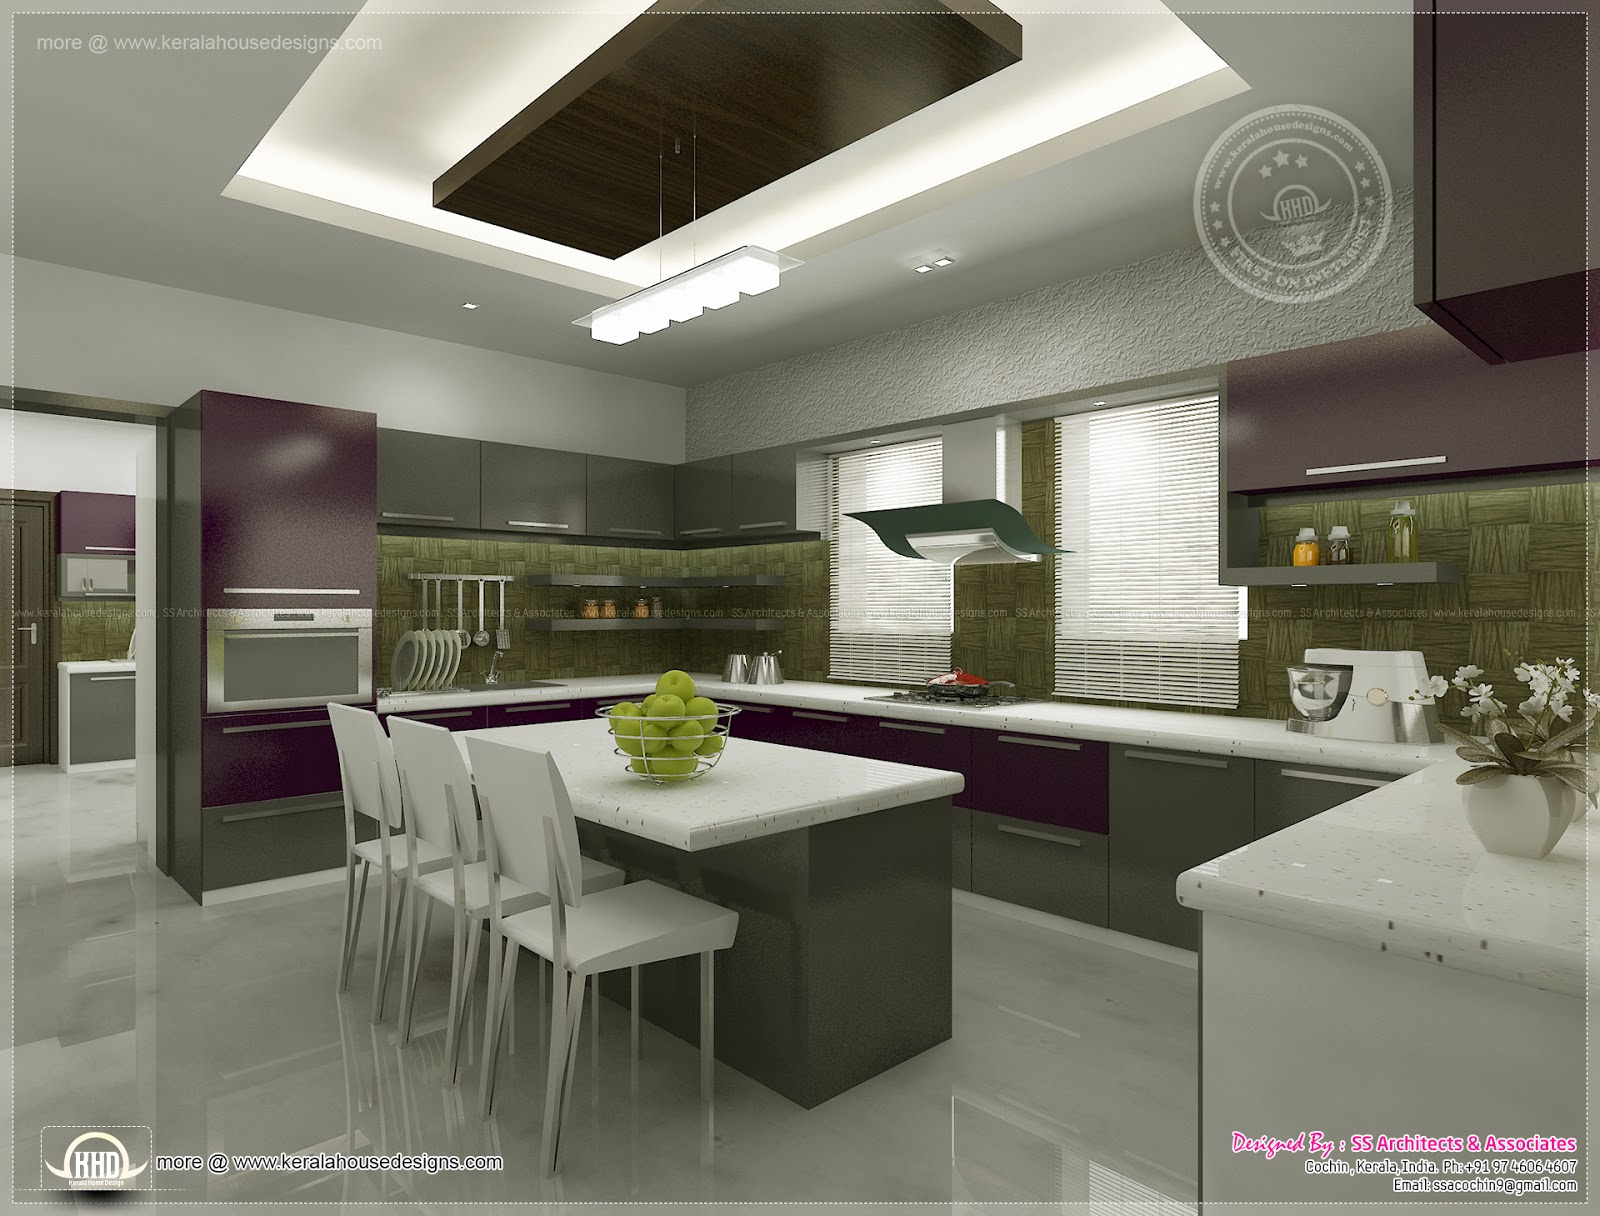 Kitchen interior views by ss architects cochin kerala Home interior design etobicoke